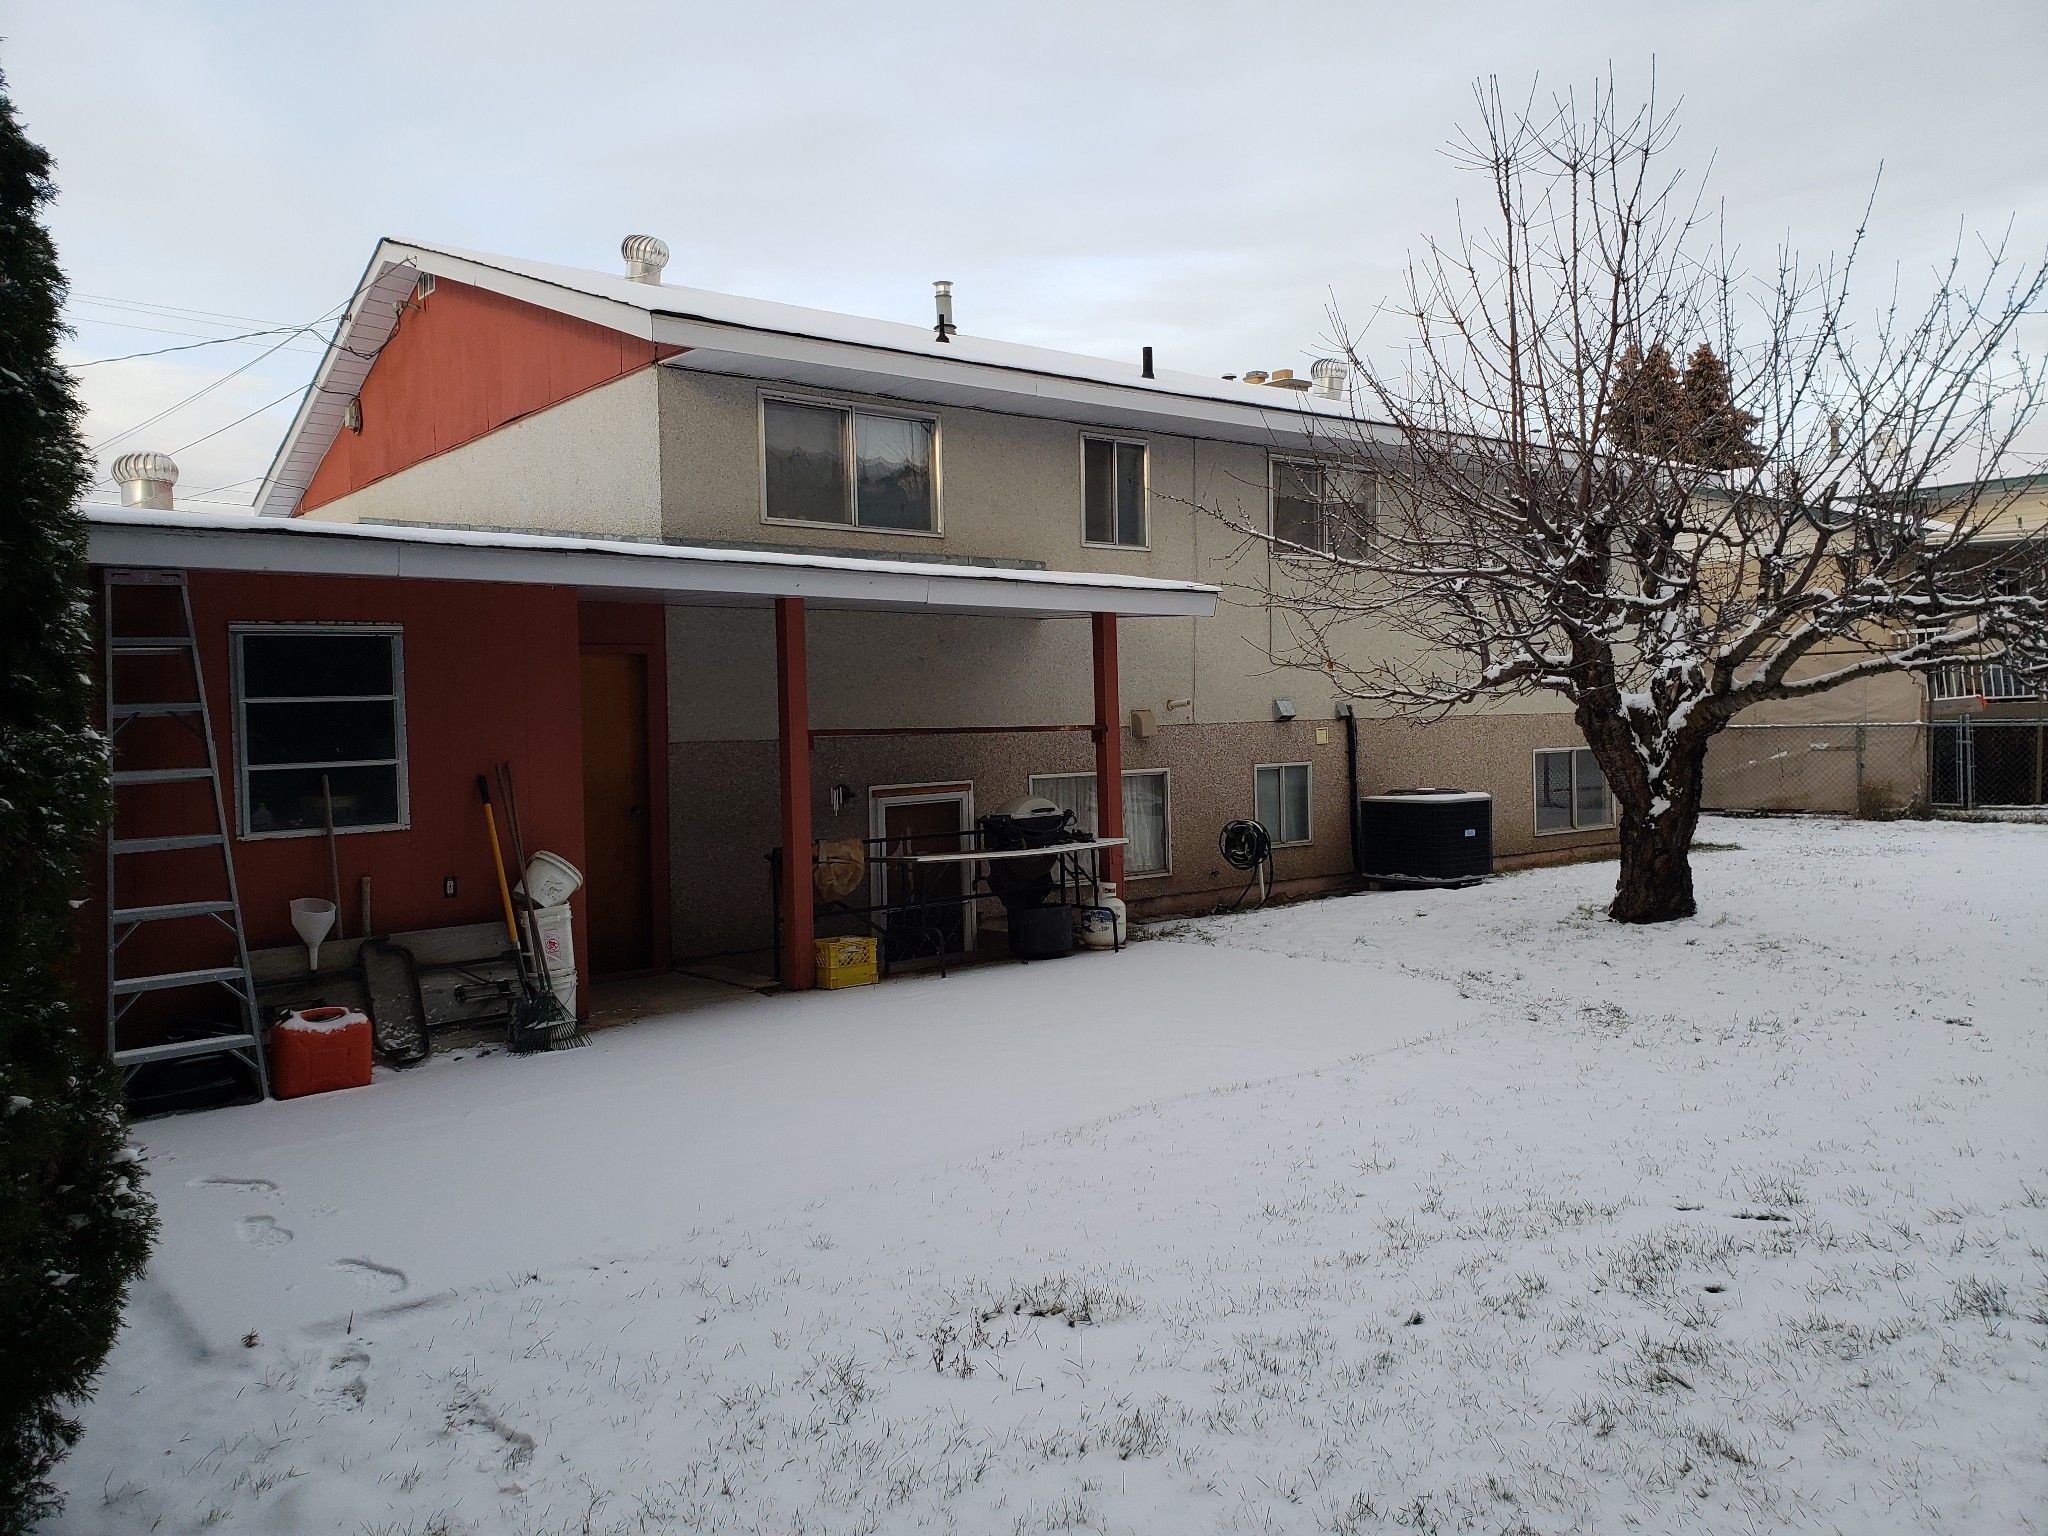 Photo 10: Photos: 821 Puhallo Drive in Kamloops: Westsyde House for sale